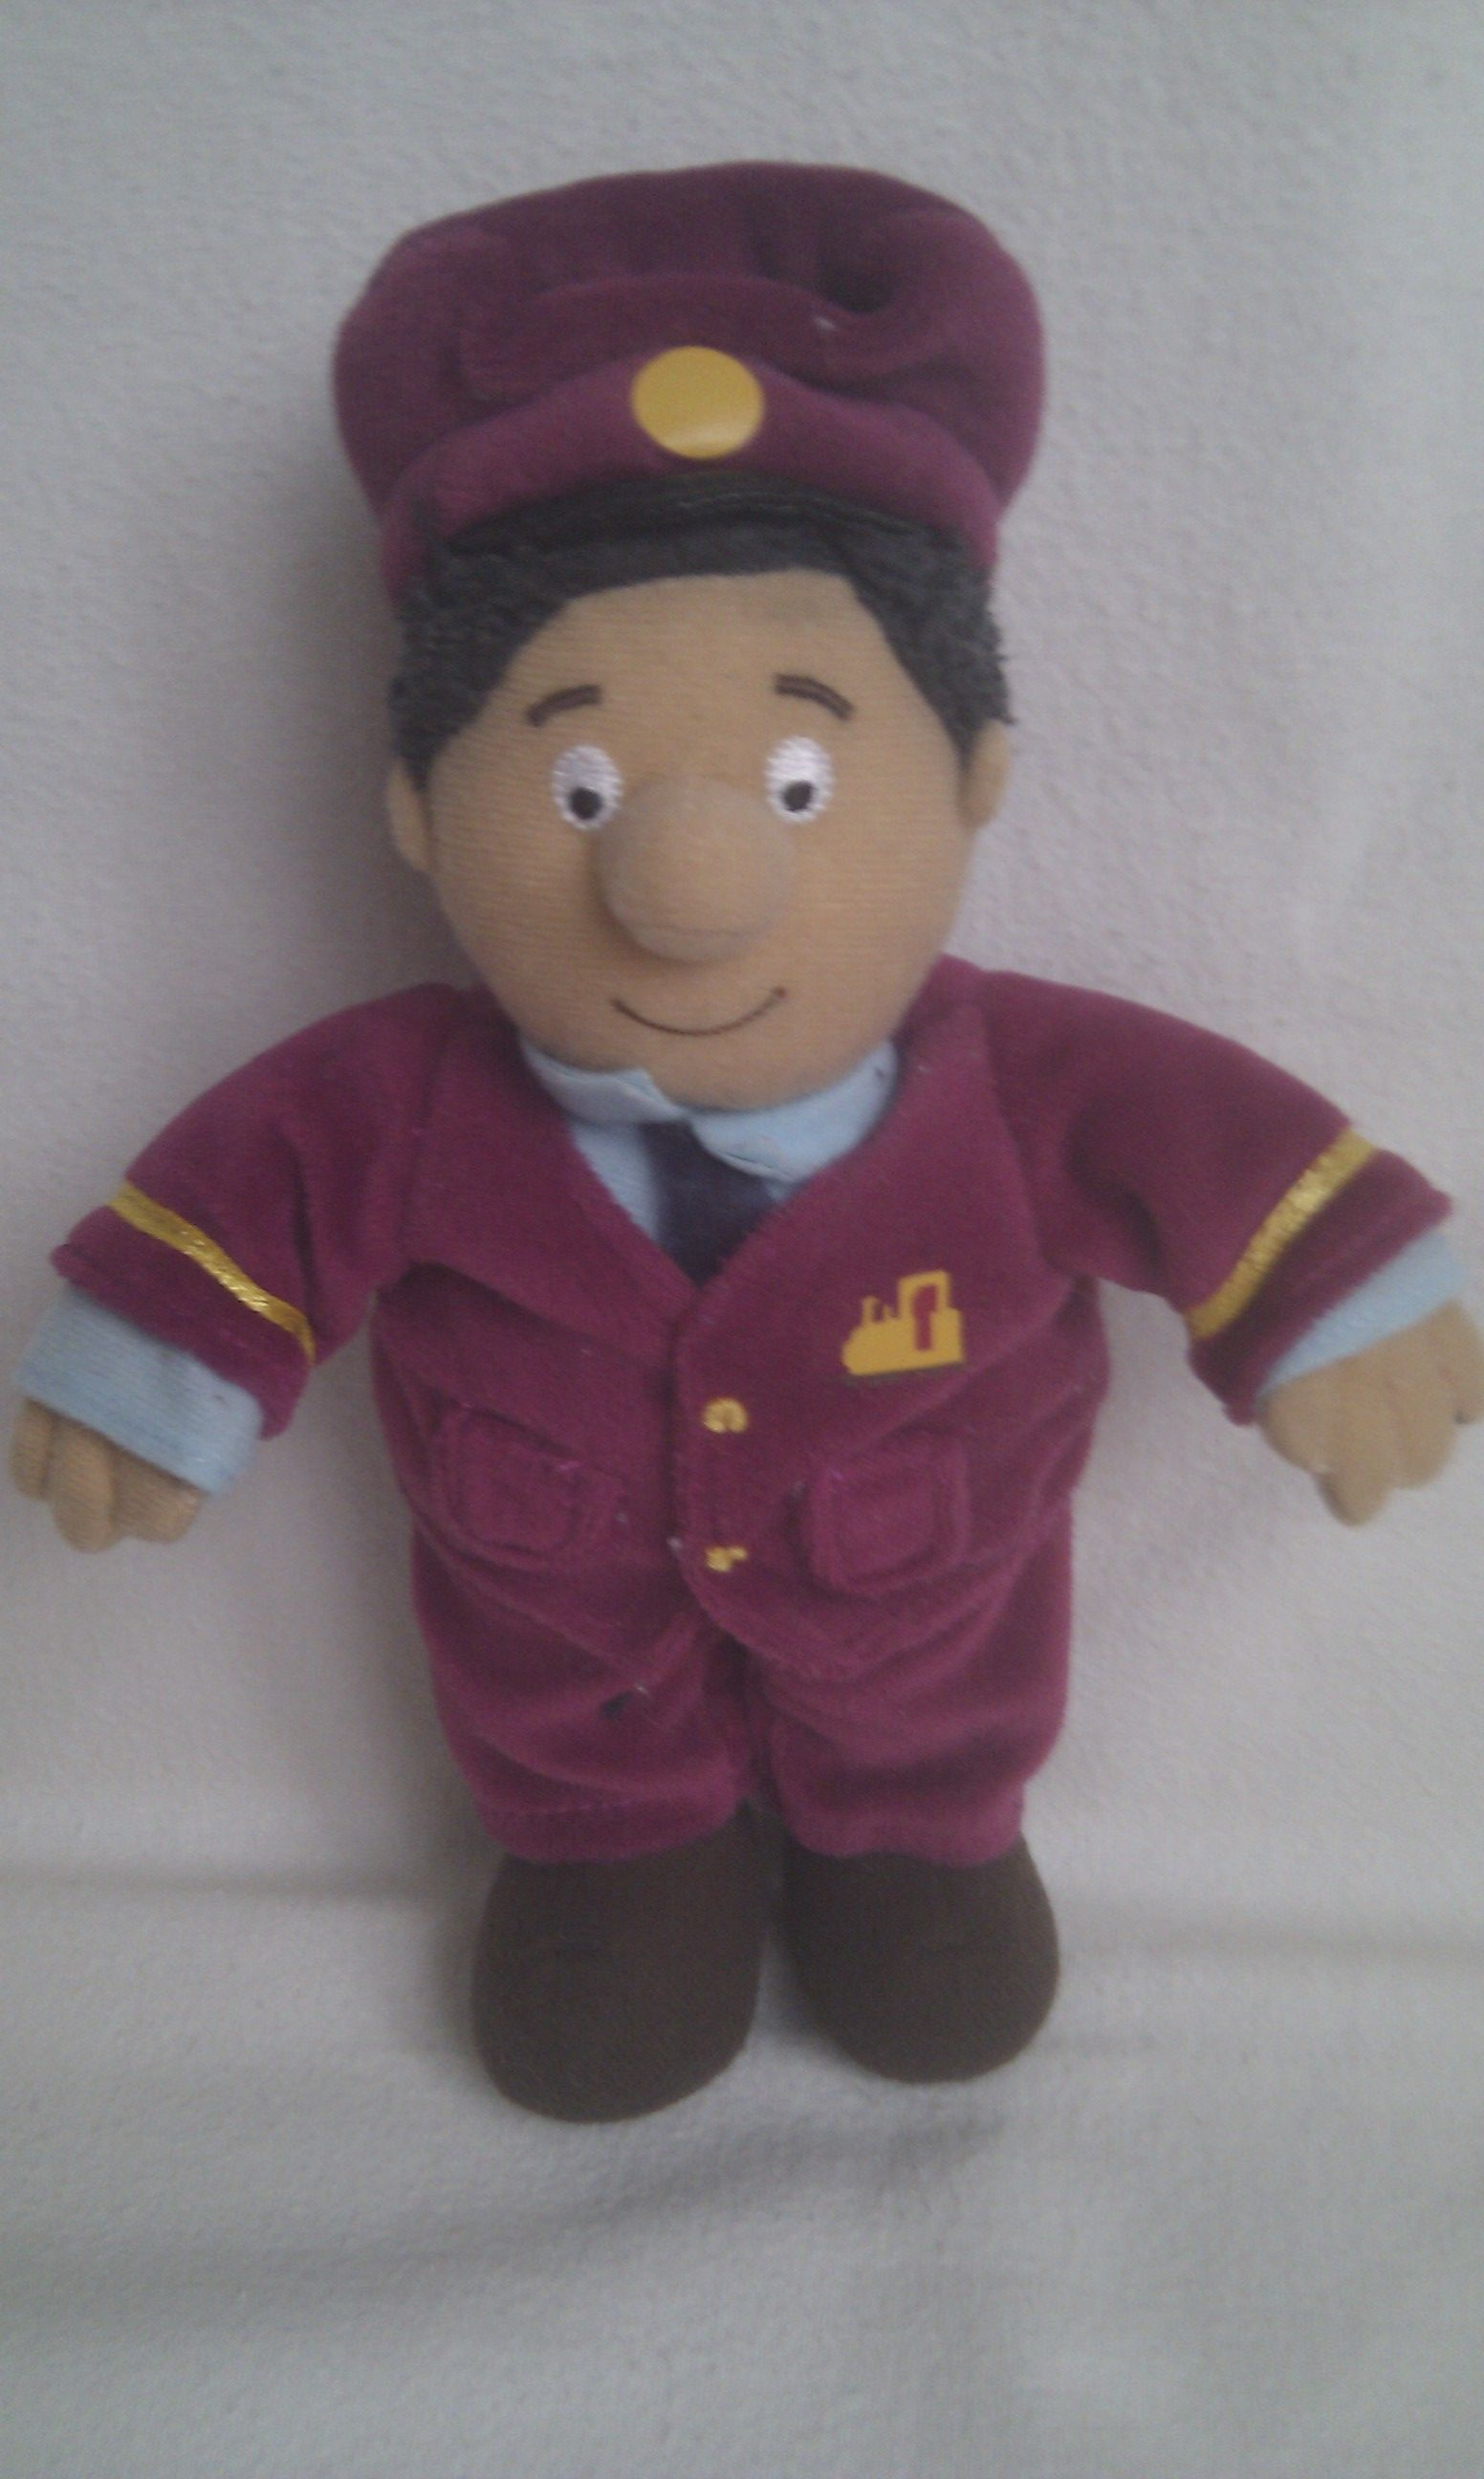 Adorable My 1st Postman Pat Ajay Bains Plush Toy